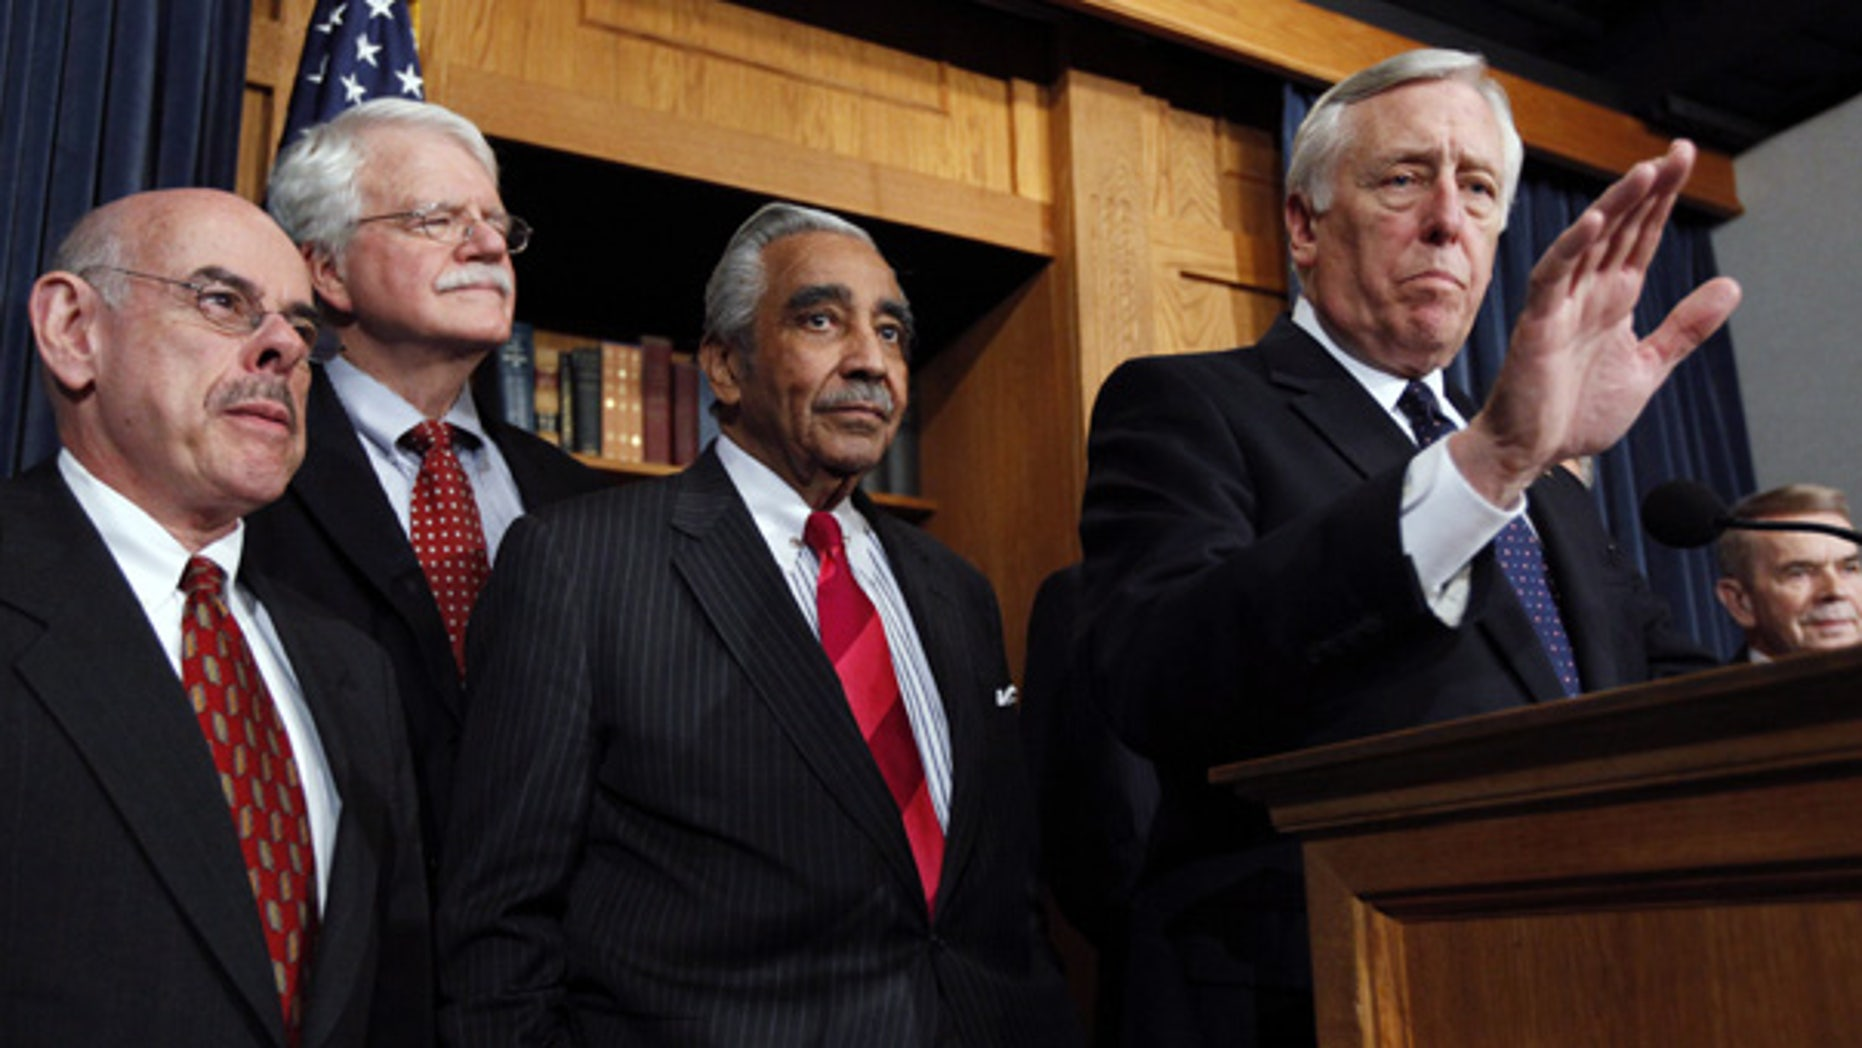 Mar. 25: House Majority Leader Steny Hoyer, front right, and other House Democrats speak to the media following the passage of the health overhaul bill.